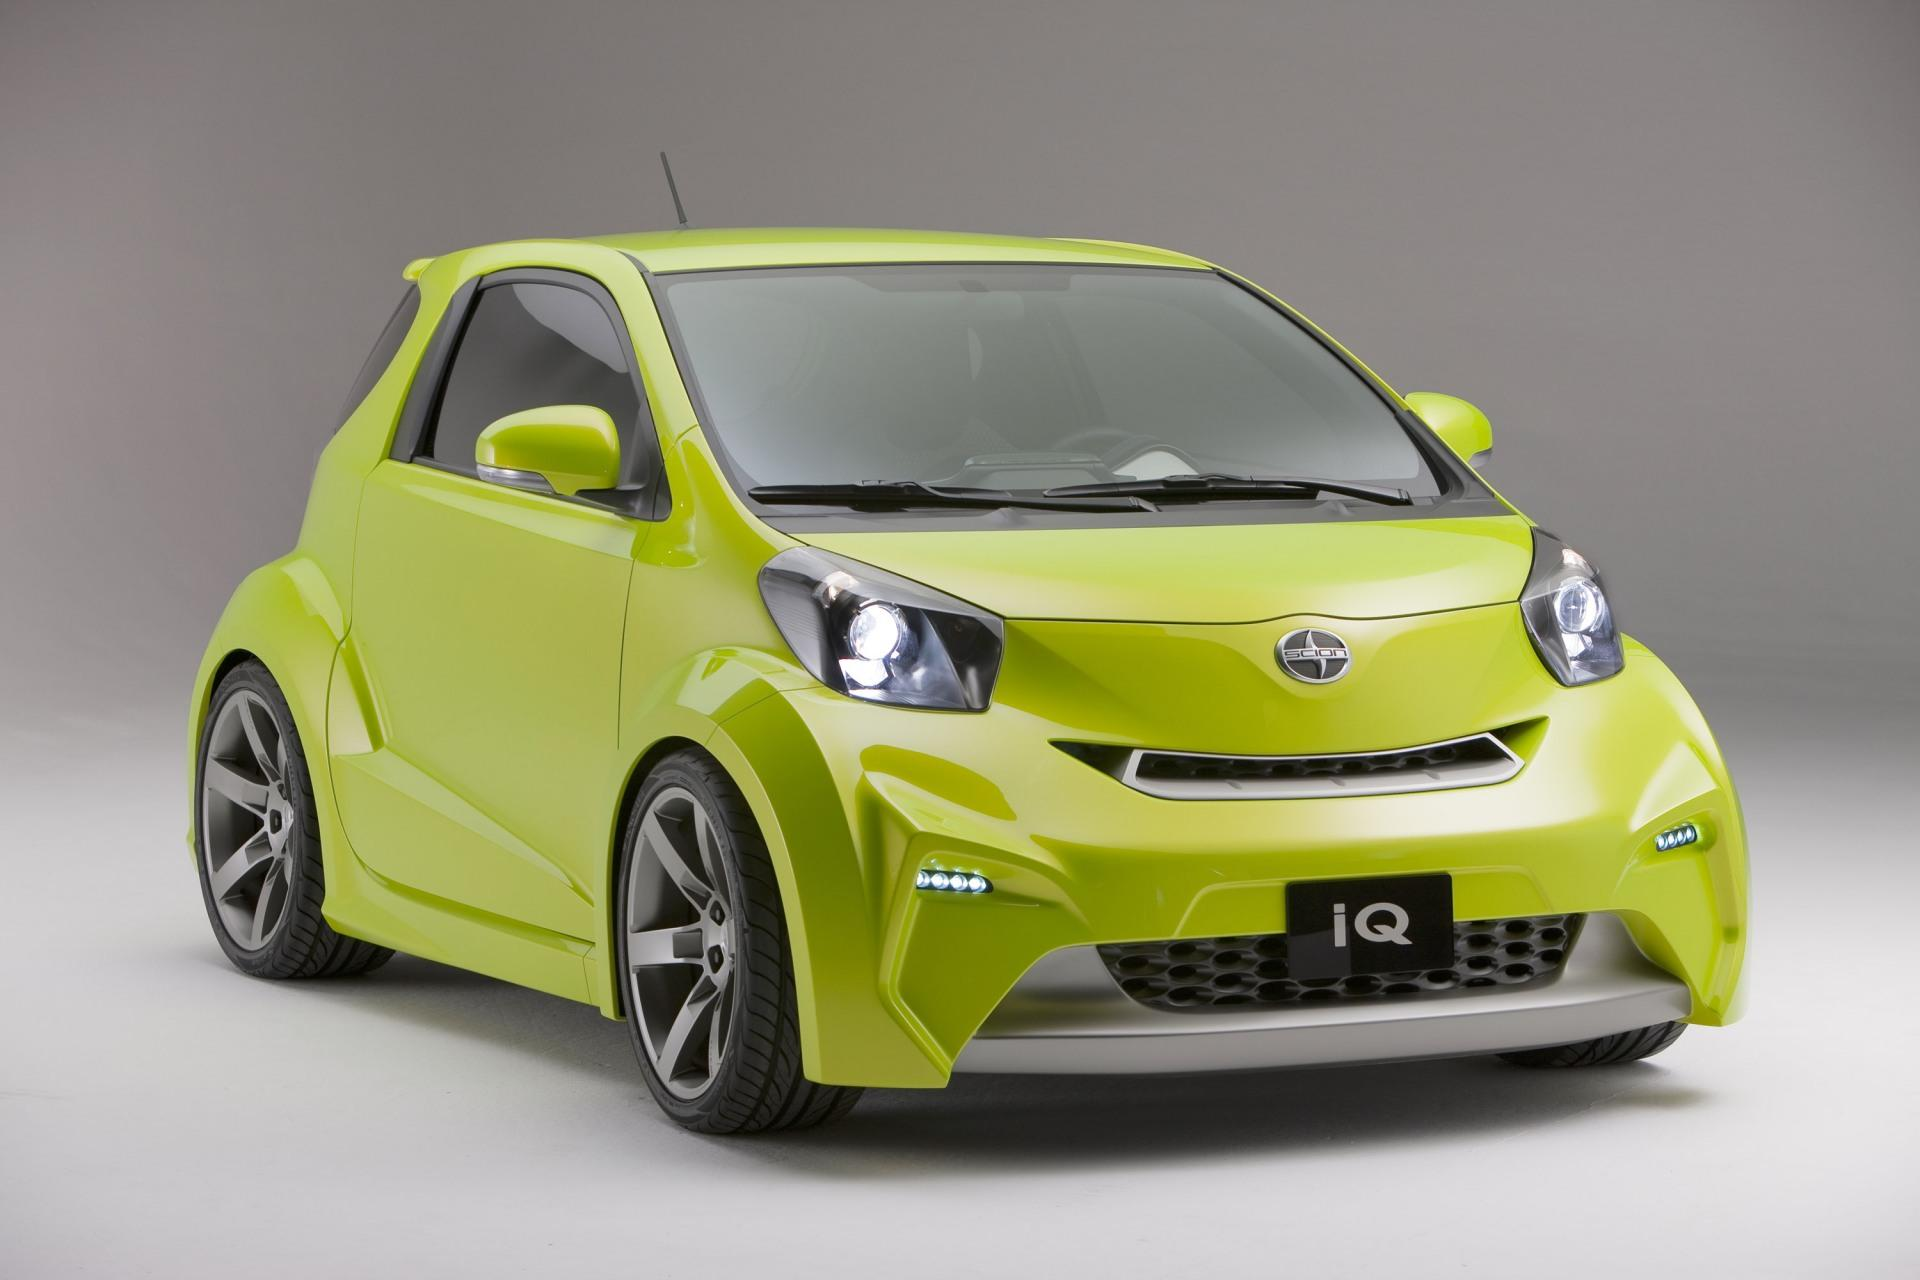 2009 Scion Iq Concept Technical Specifications And Data